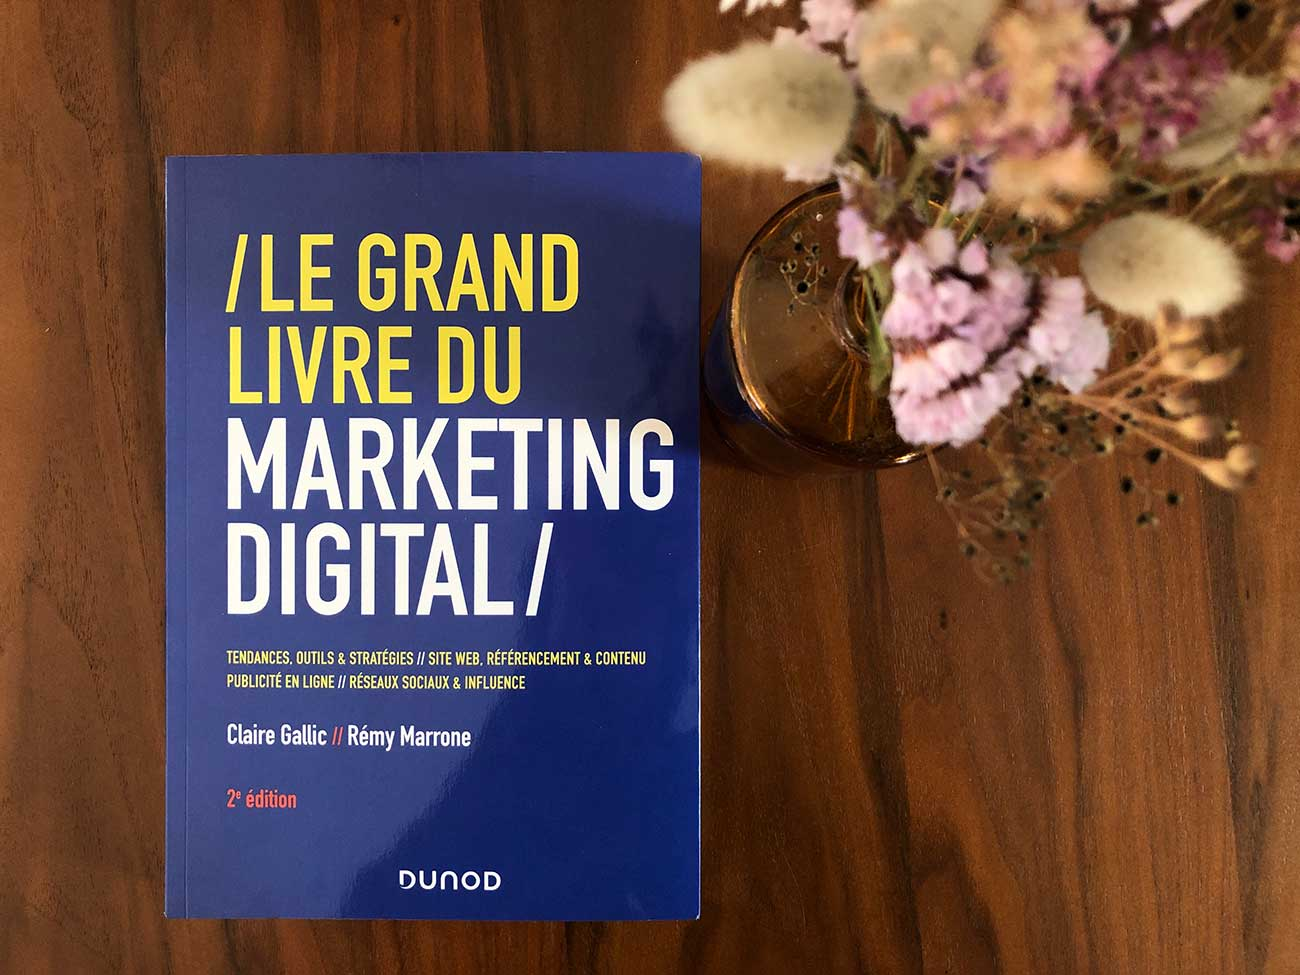 Le Grand Livre du Marketing Digital - Dunod - 2018